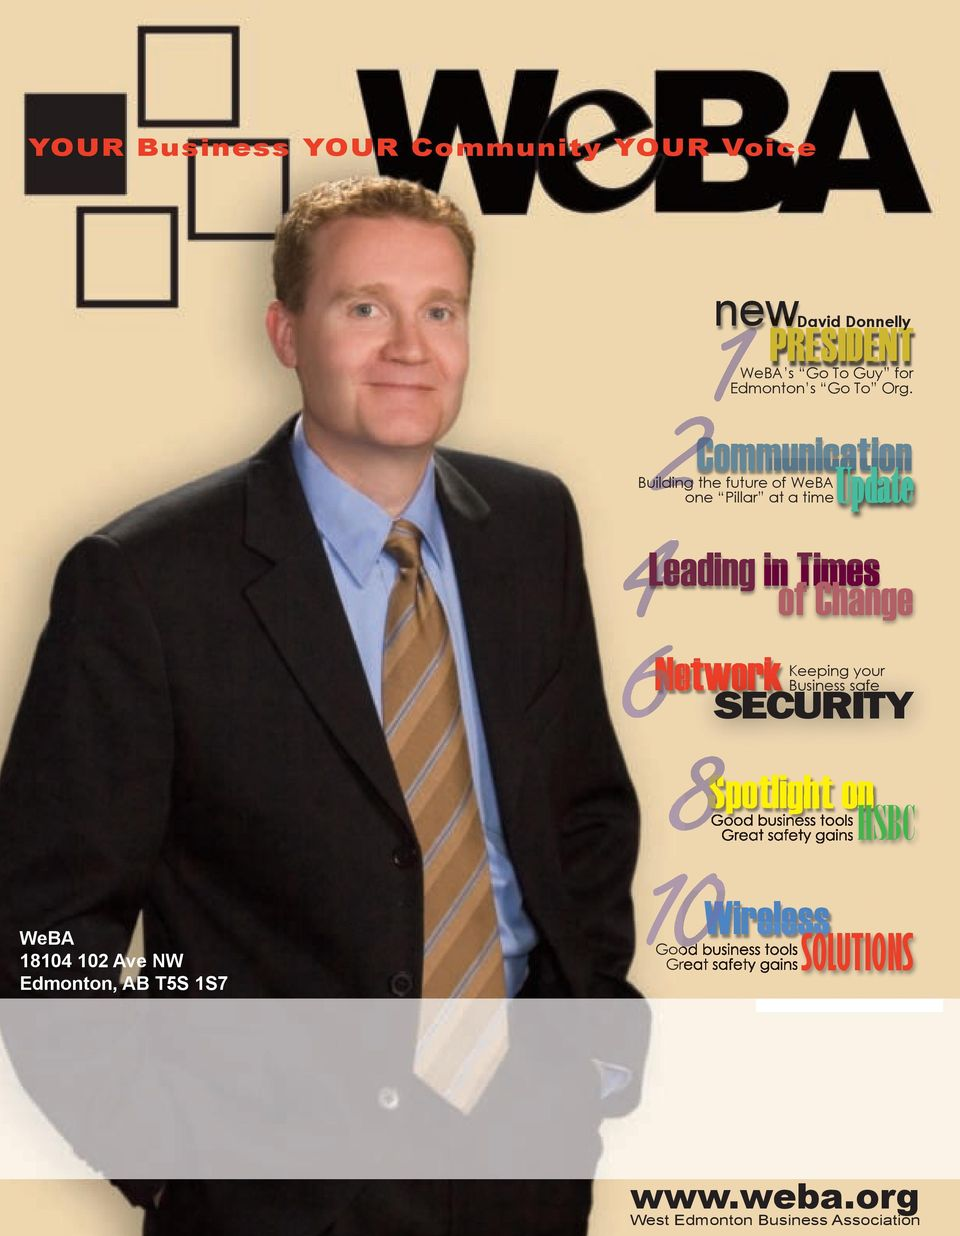 Business safe SECURITY Spotlight on Good business tools Great safety gains HSBC WeBA 18104 102 Ave NW Edmonton,